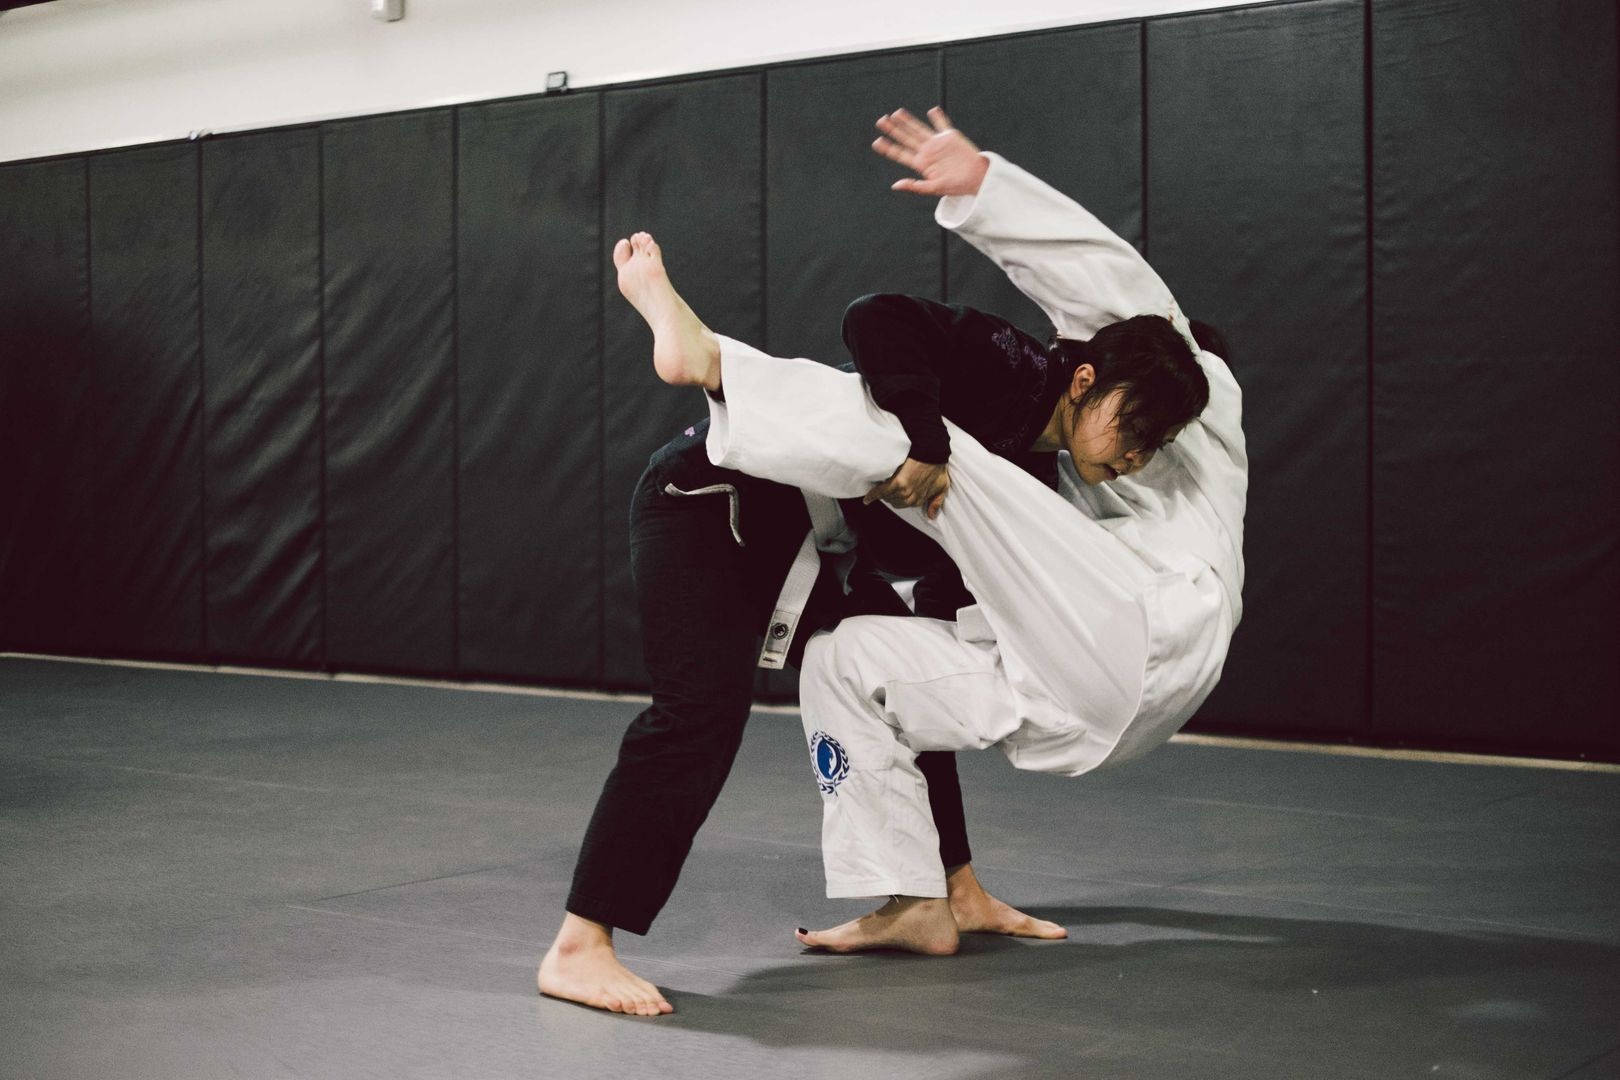 BJJ is a fun, exciting full body workout.